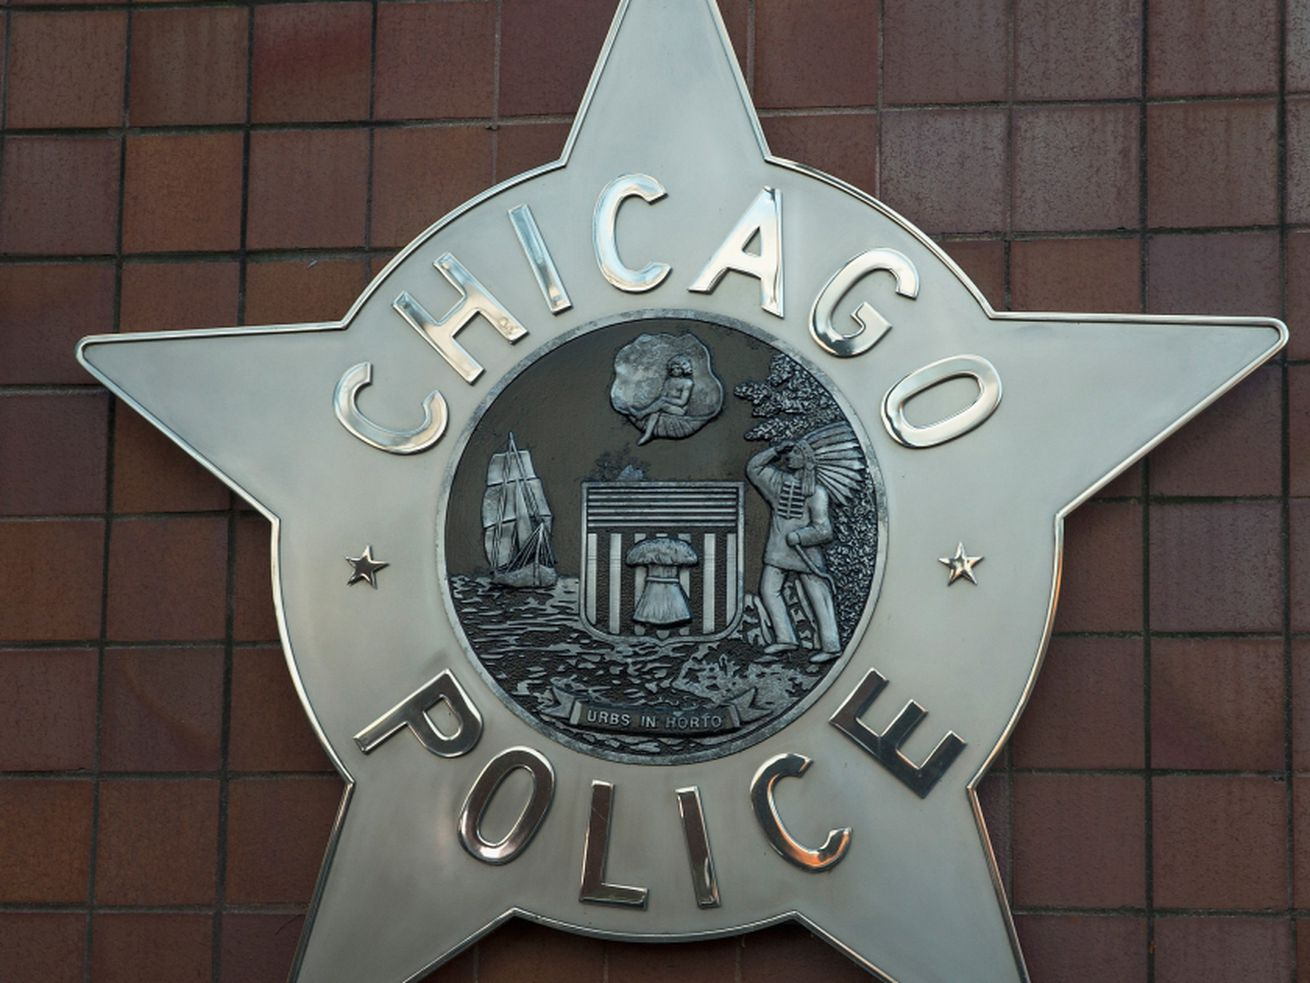 CPD's subpoena compliance 'inadequate,' inspector general finds